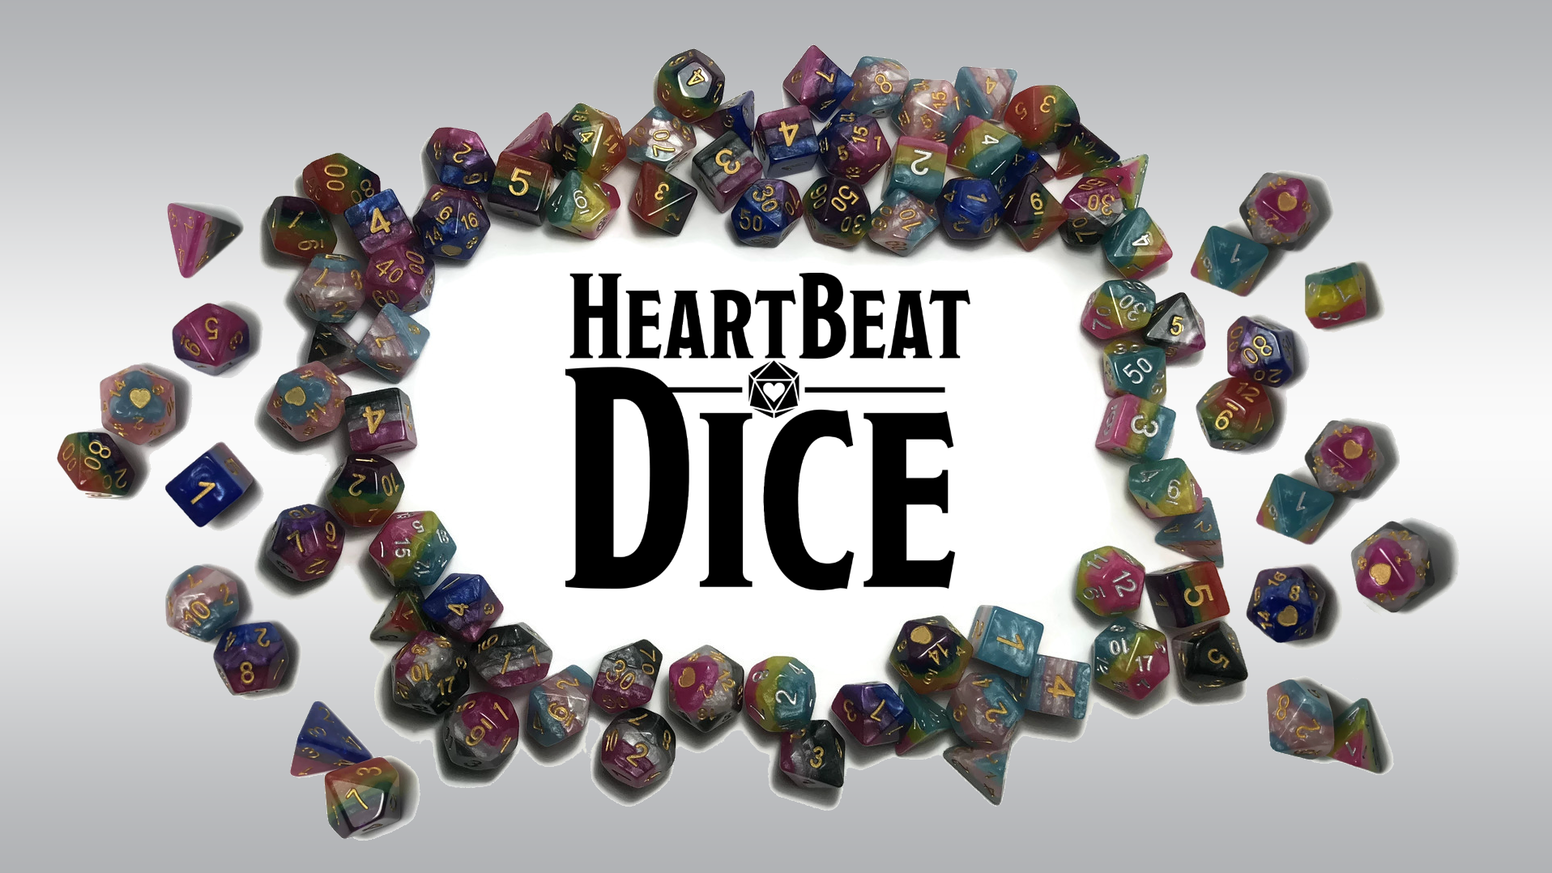 A variety of layered Pride themed polyhedral dice sets for board games & RPG games.